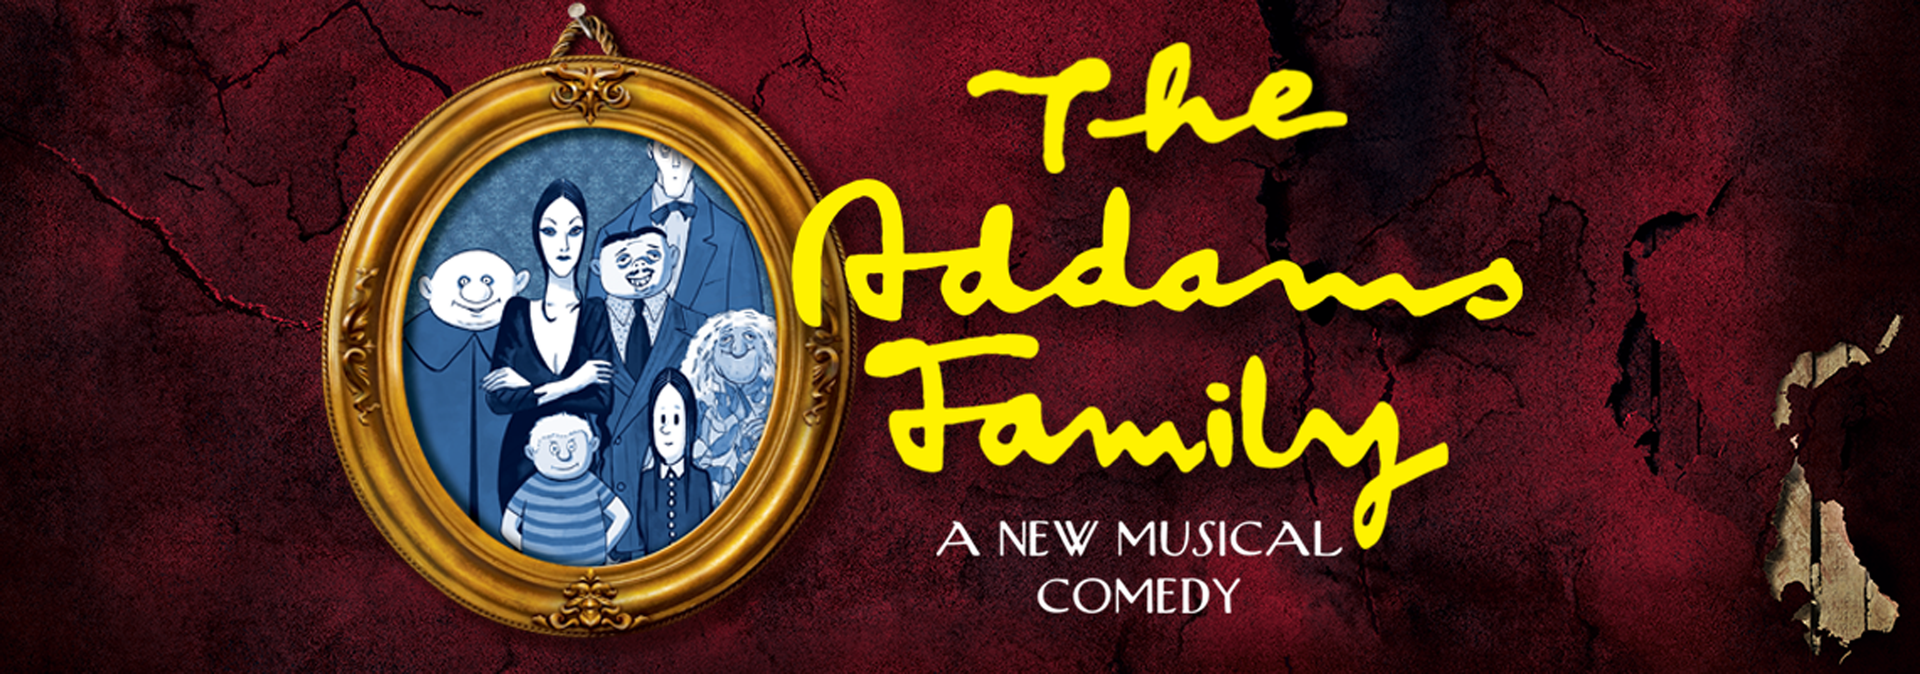 "The Westlake Players present ""The Addams Family."" Performances are March 29, 30 at 8:00 pm., March 31 at 1:00 pm., April 5 and April 6 at 8:00 pm."